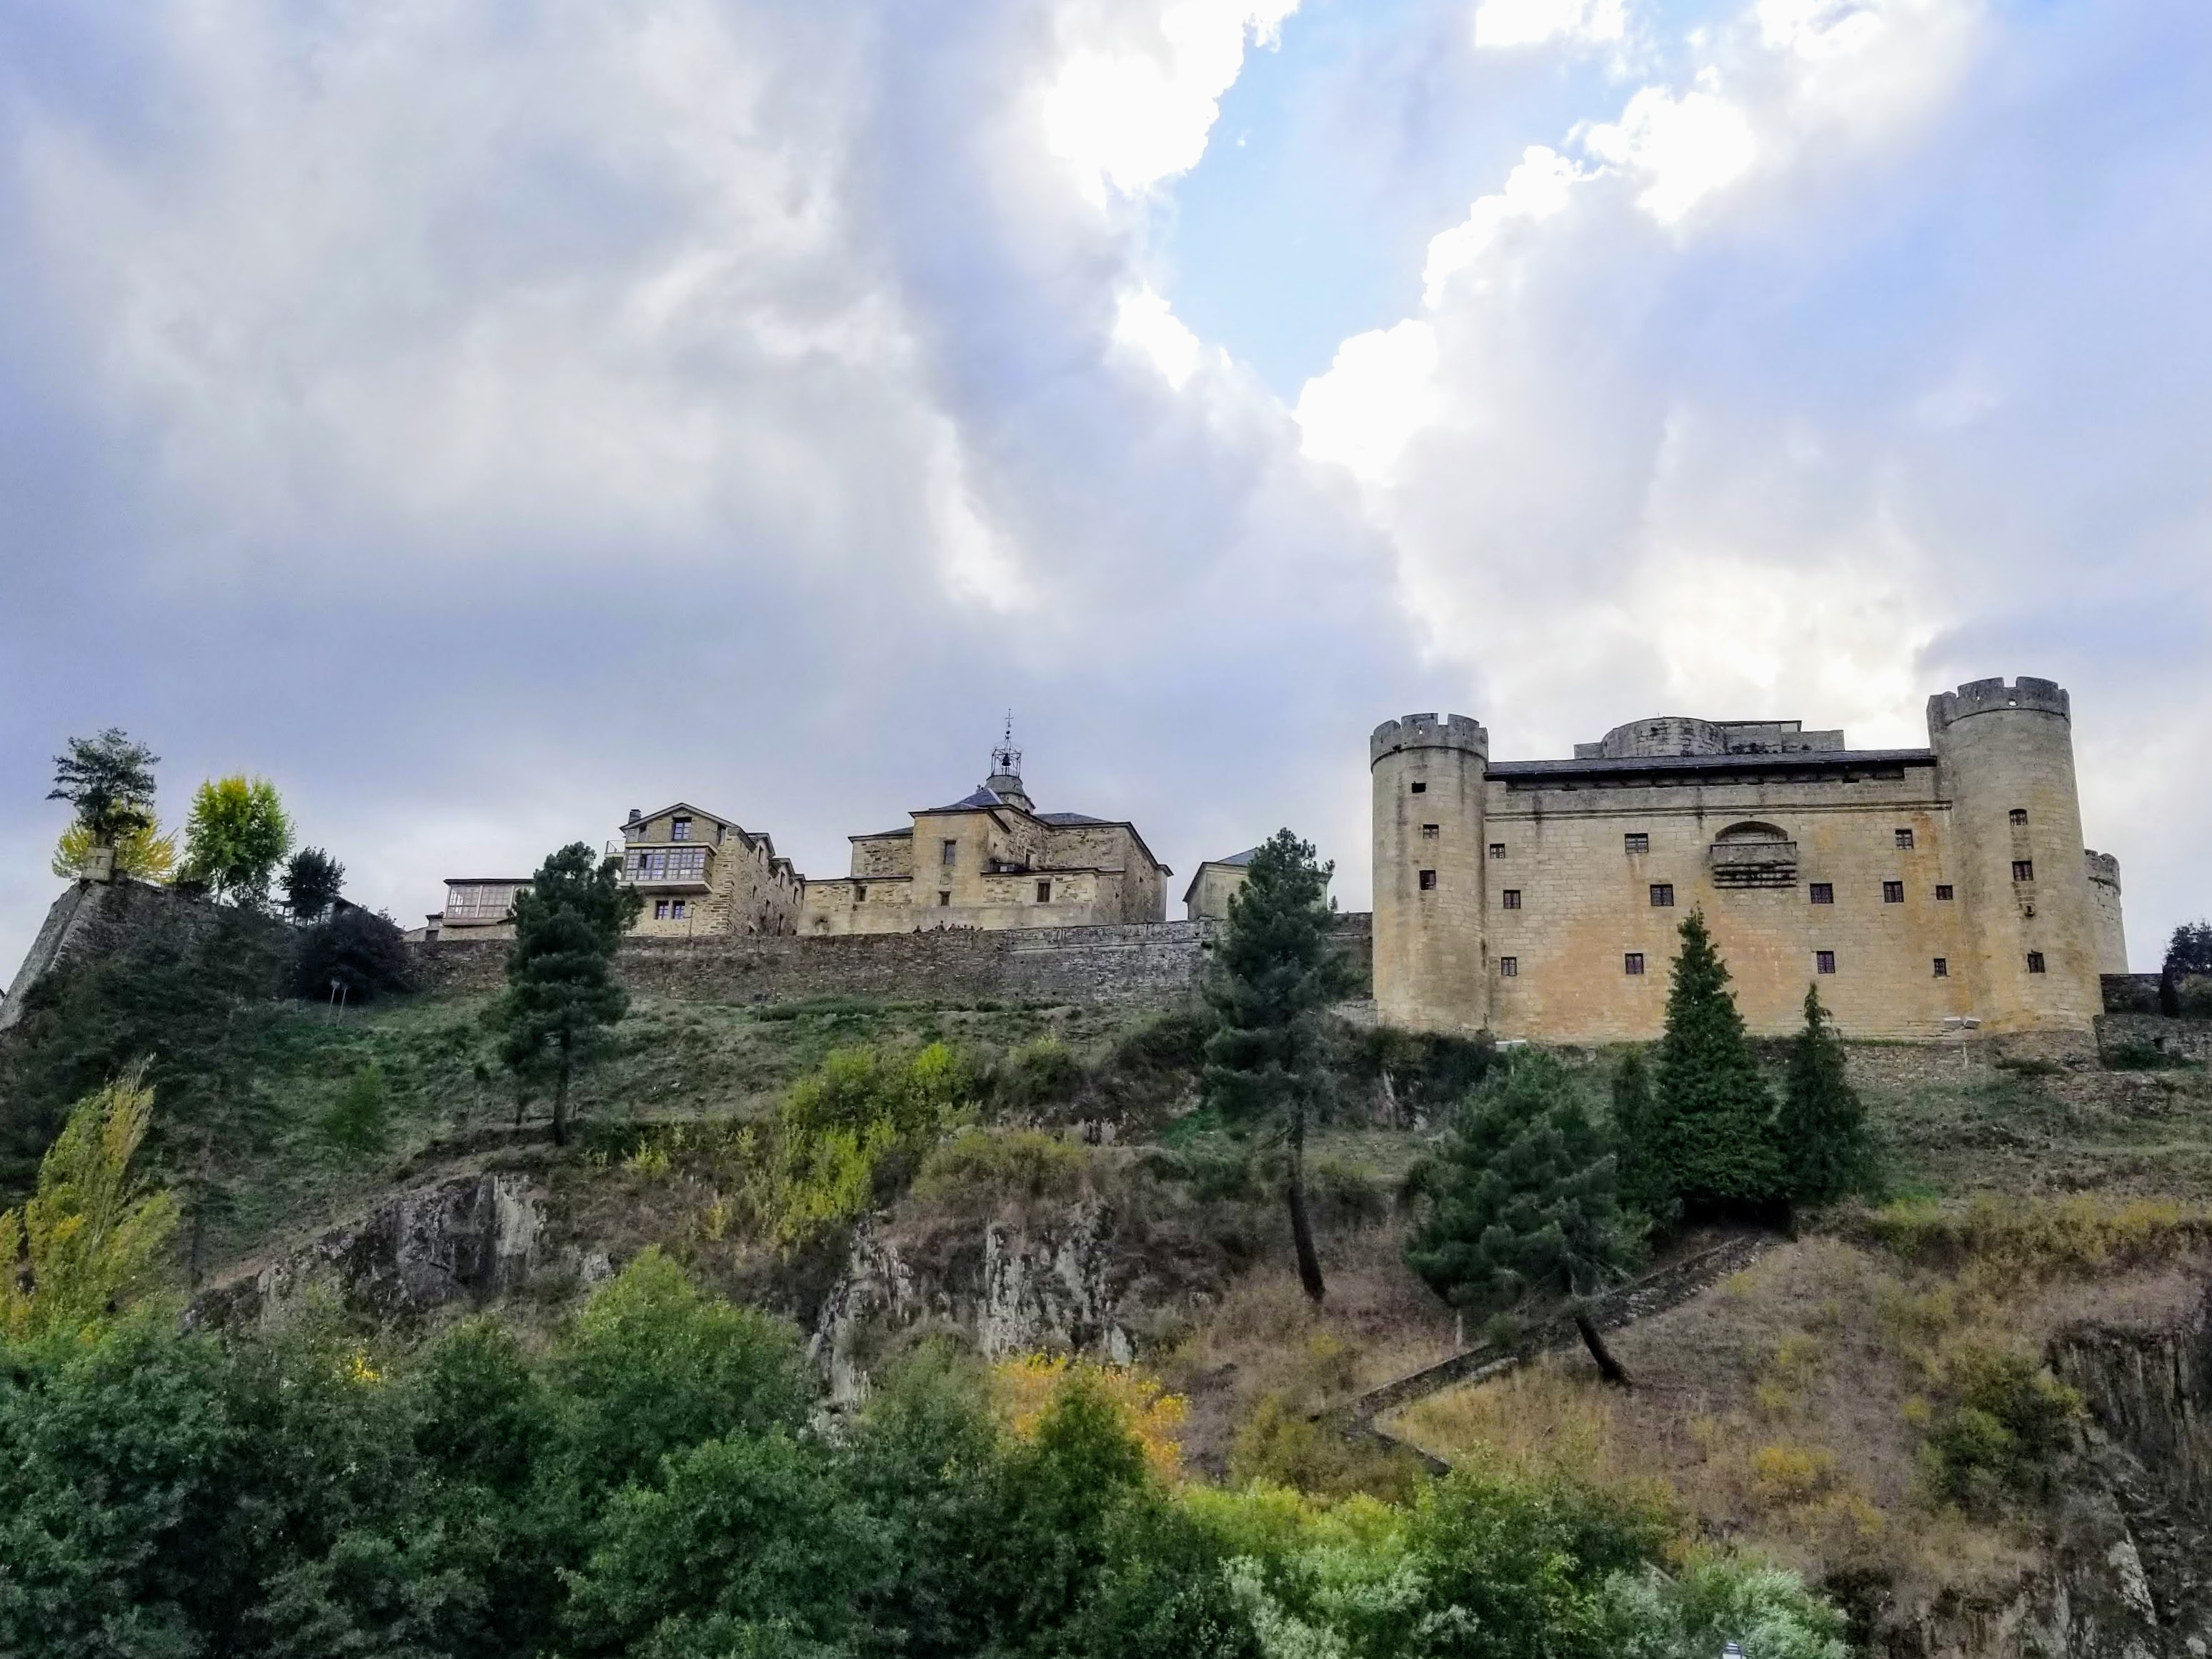 Puebla de Sanabria ~ A Fortress on the Hill